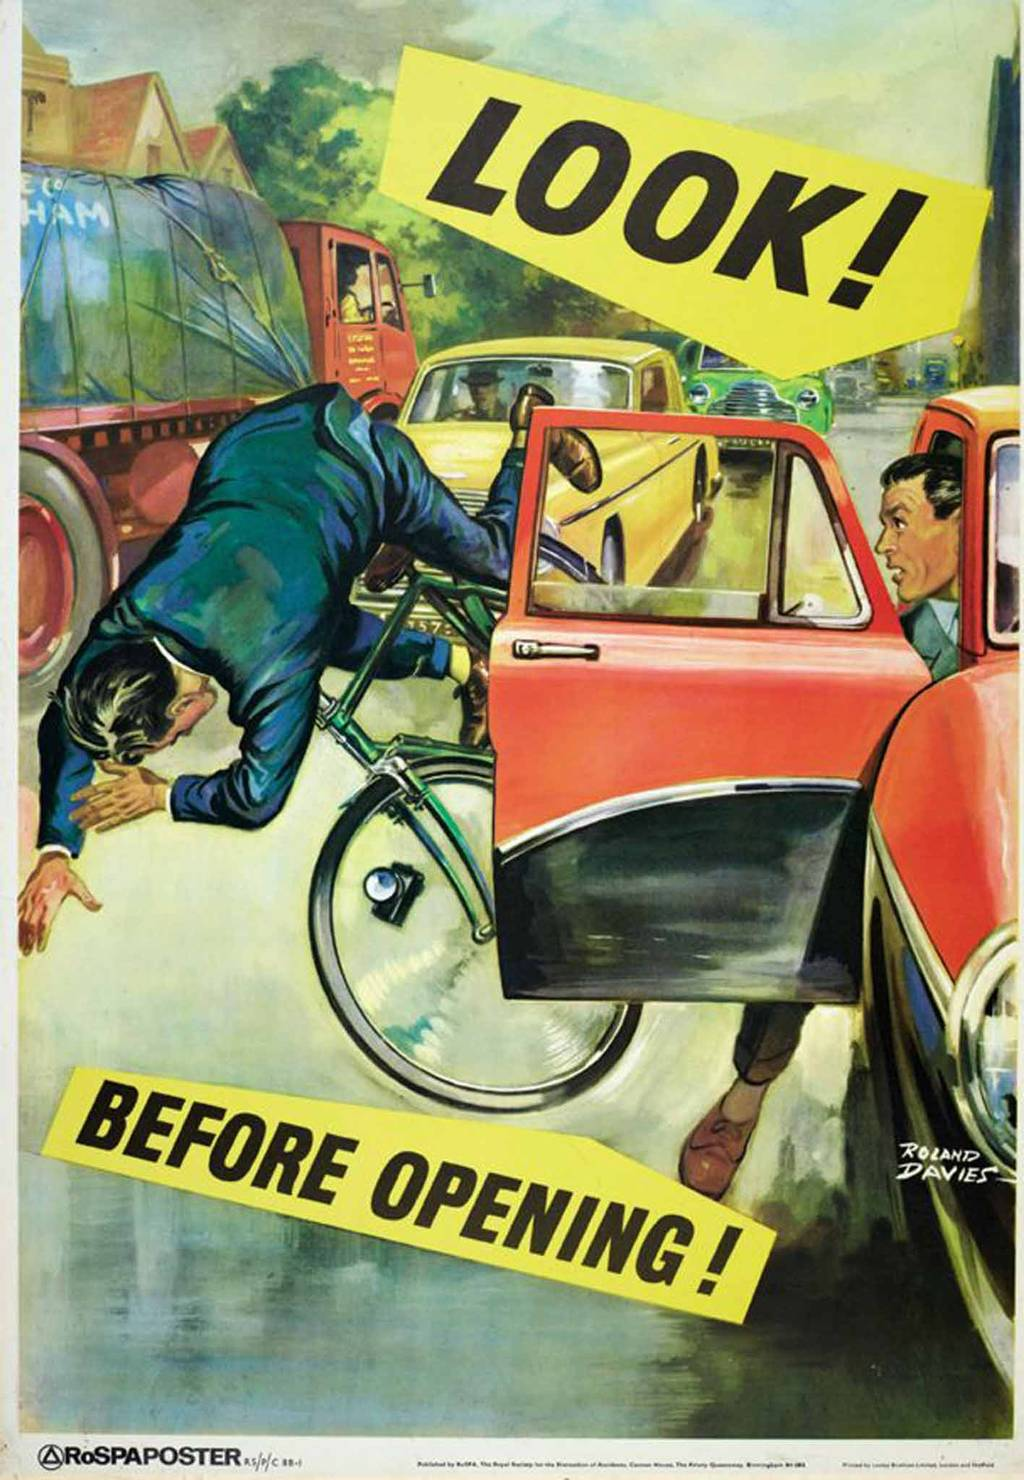 Safety Posters From The Golden Age Of Accident Prevention